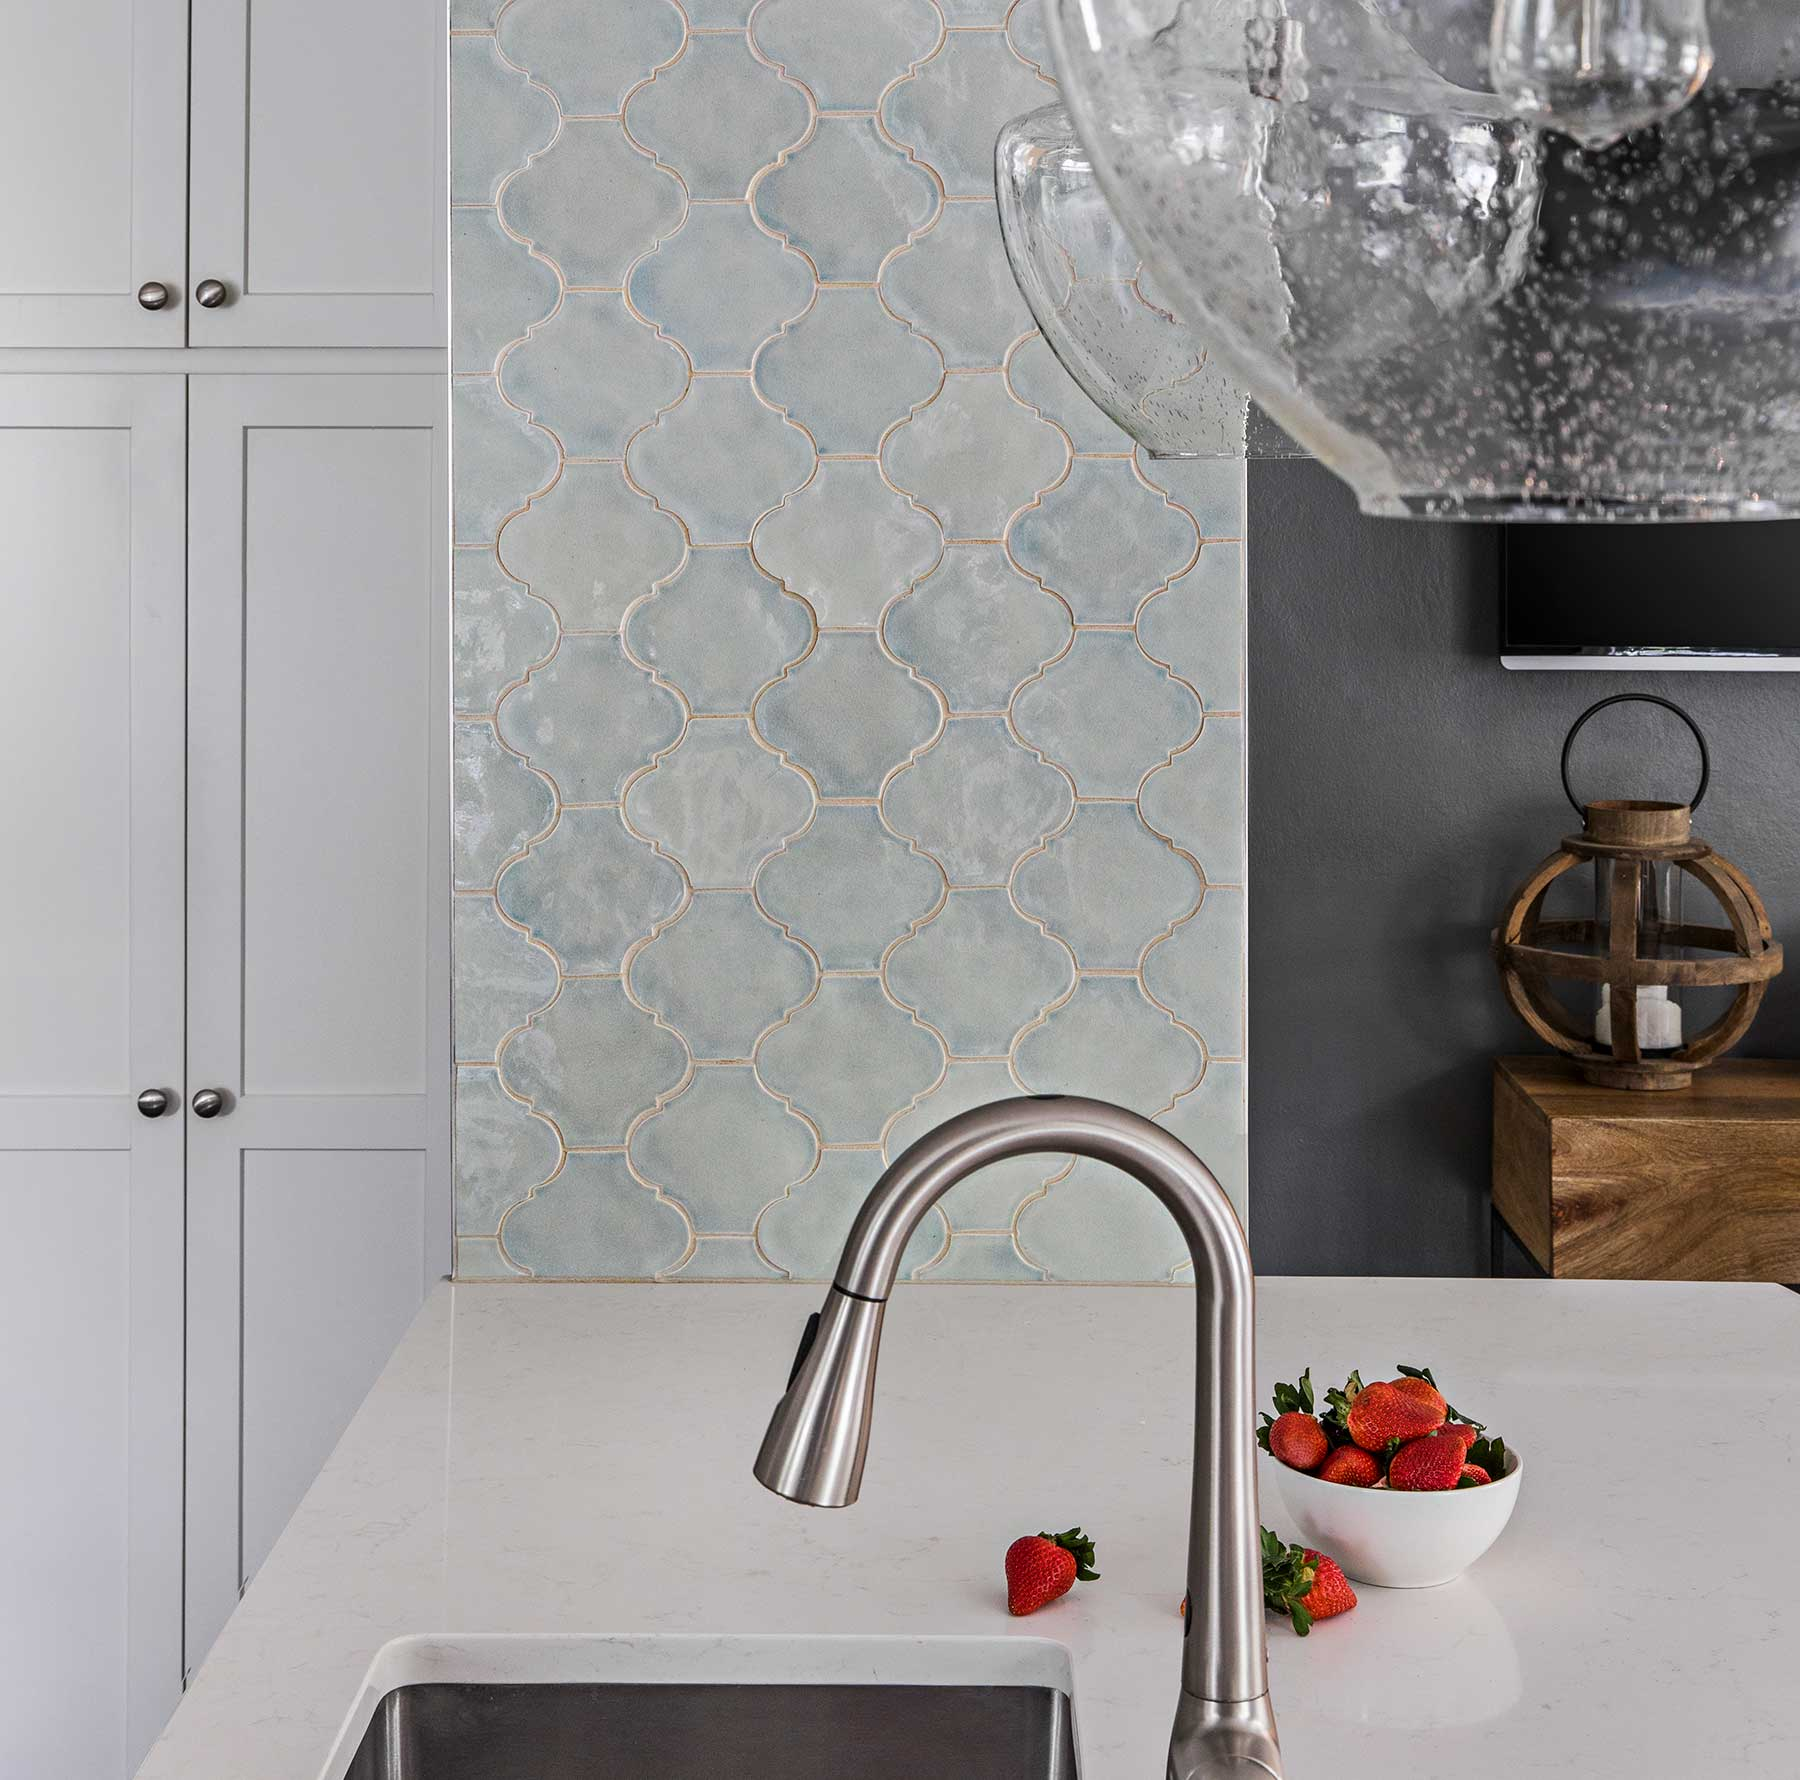 Tiled wall partition in remodeled kitchen